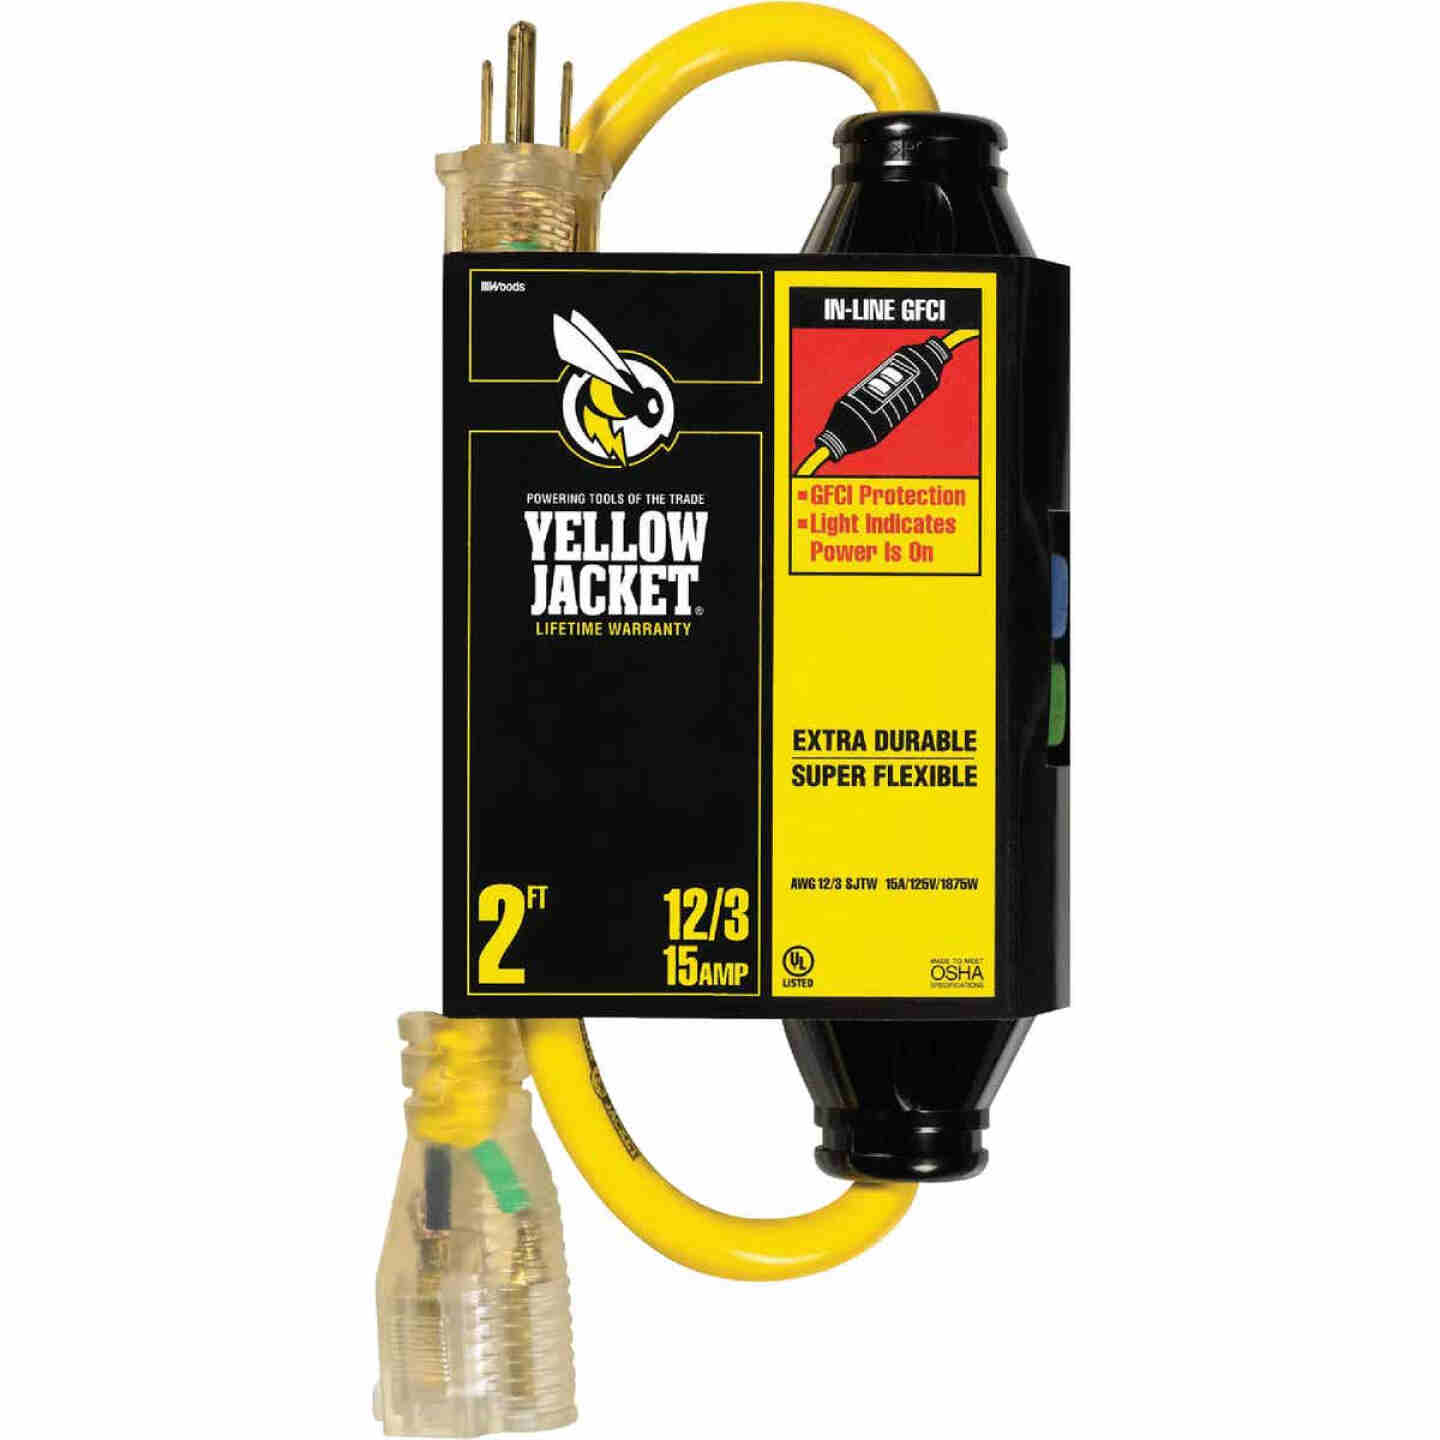 Yellow Jacket 2 Ft. 12/3 Contractor Grade GFCI Extension Cord Image 1